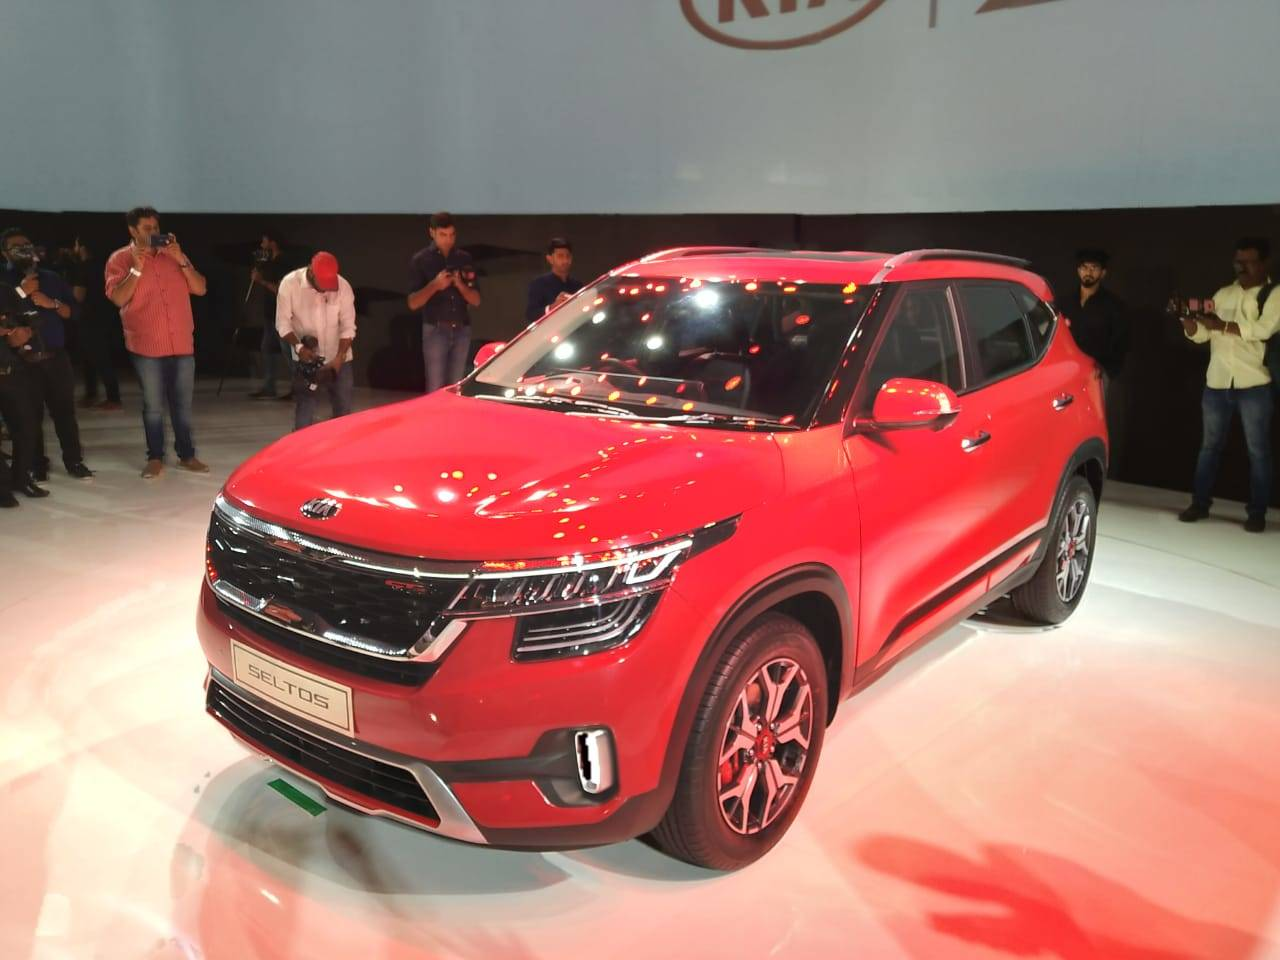 Seltos Suv Kia Motors To Develop 4 Cars In 2 Years Eyes 300 Touch